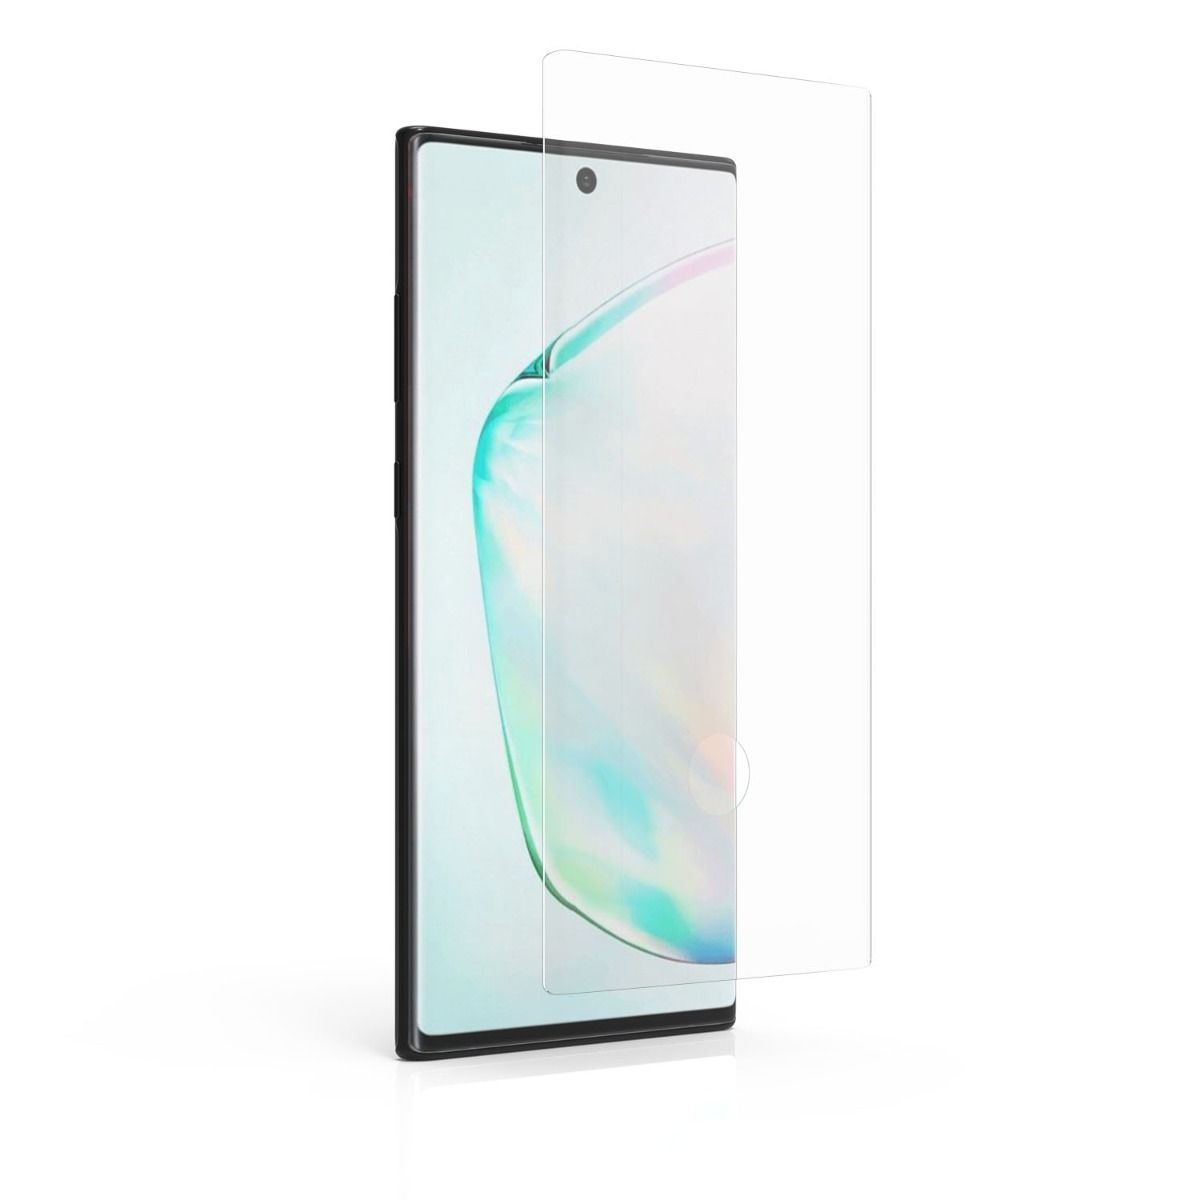 Samsung Galaxy Note10 Curved Steel 360 Tempered Glass Screen Protector with Fingerprint Sensor Ready with Alignment Tray and Pure Pledge up to $100